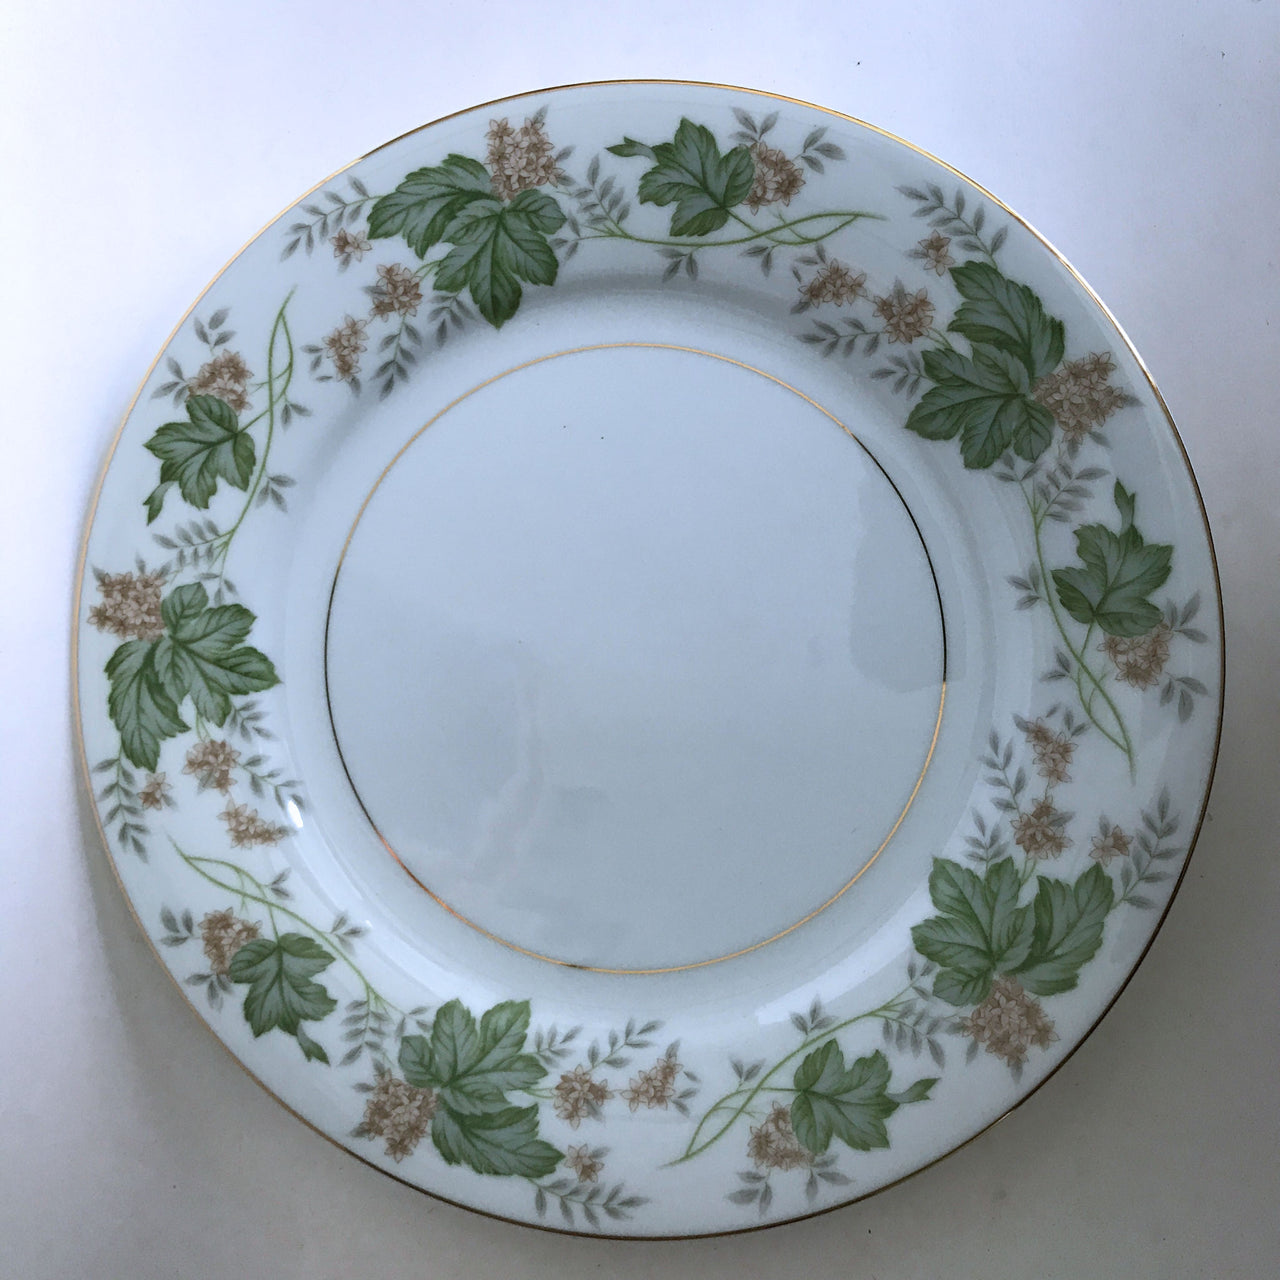 Vintage Noritake Daphne 5312 Dinner Plate Tan Flowers Green Silver Leaves Gold